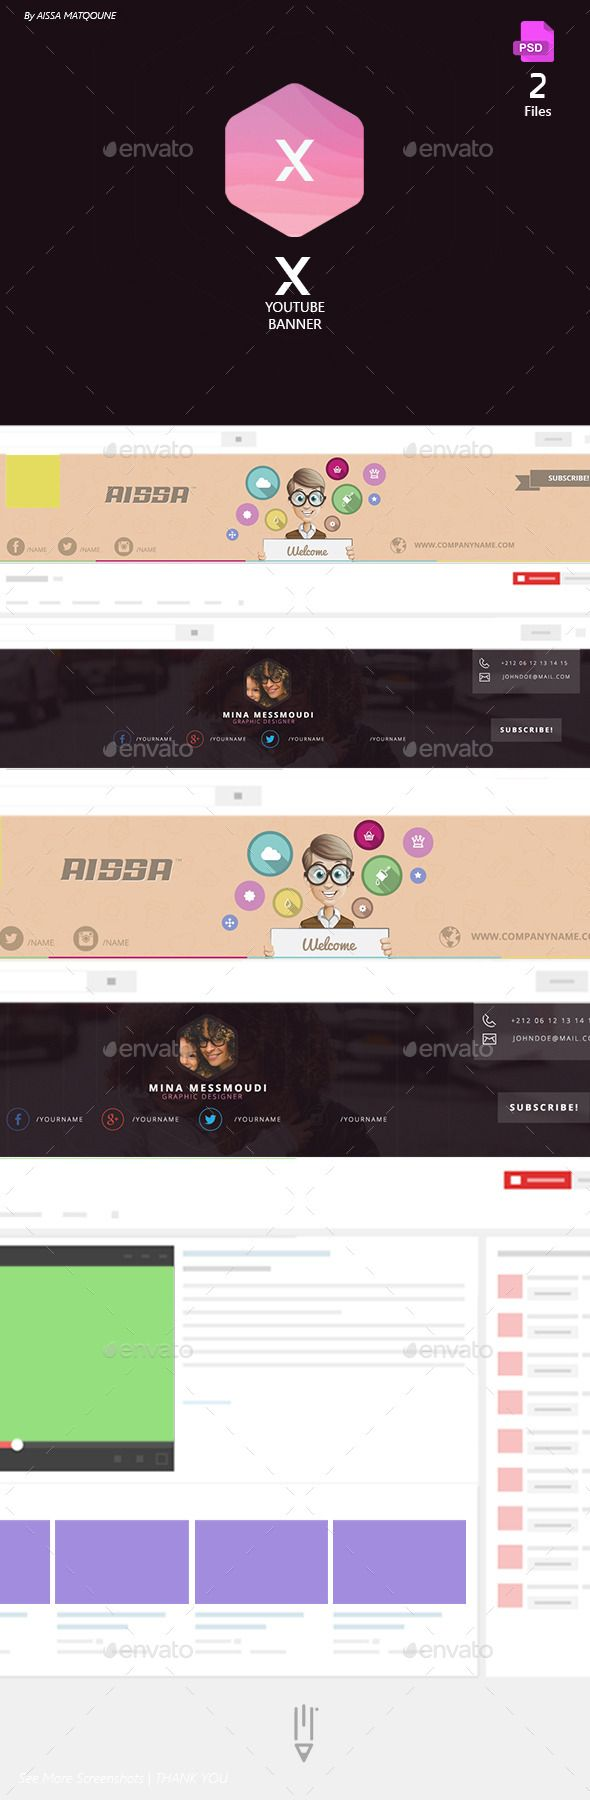 51 best Youtube Banner Template images on Pinterest | Banner ...